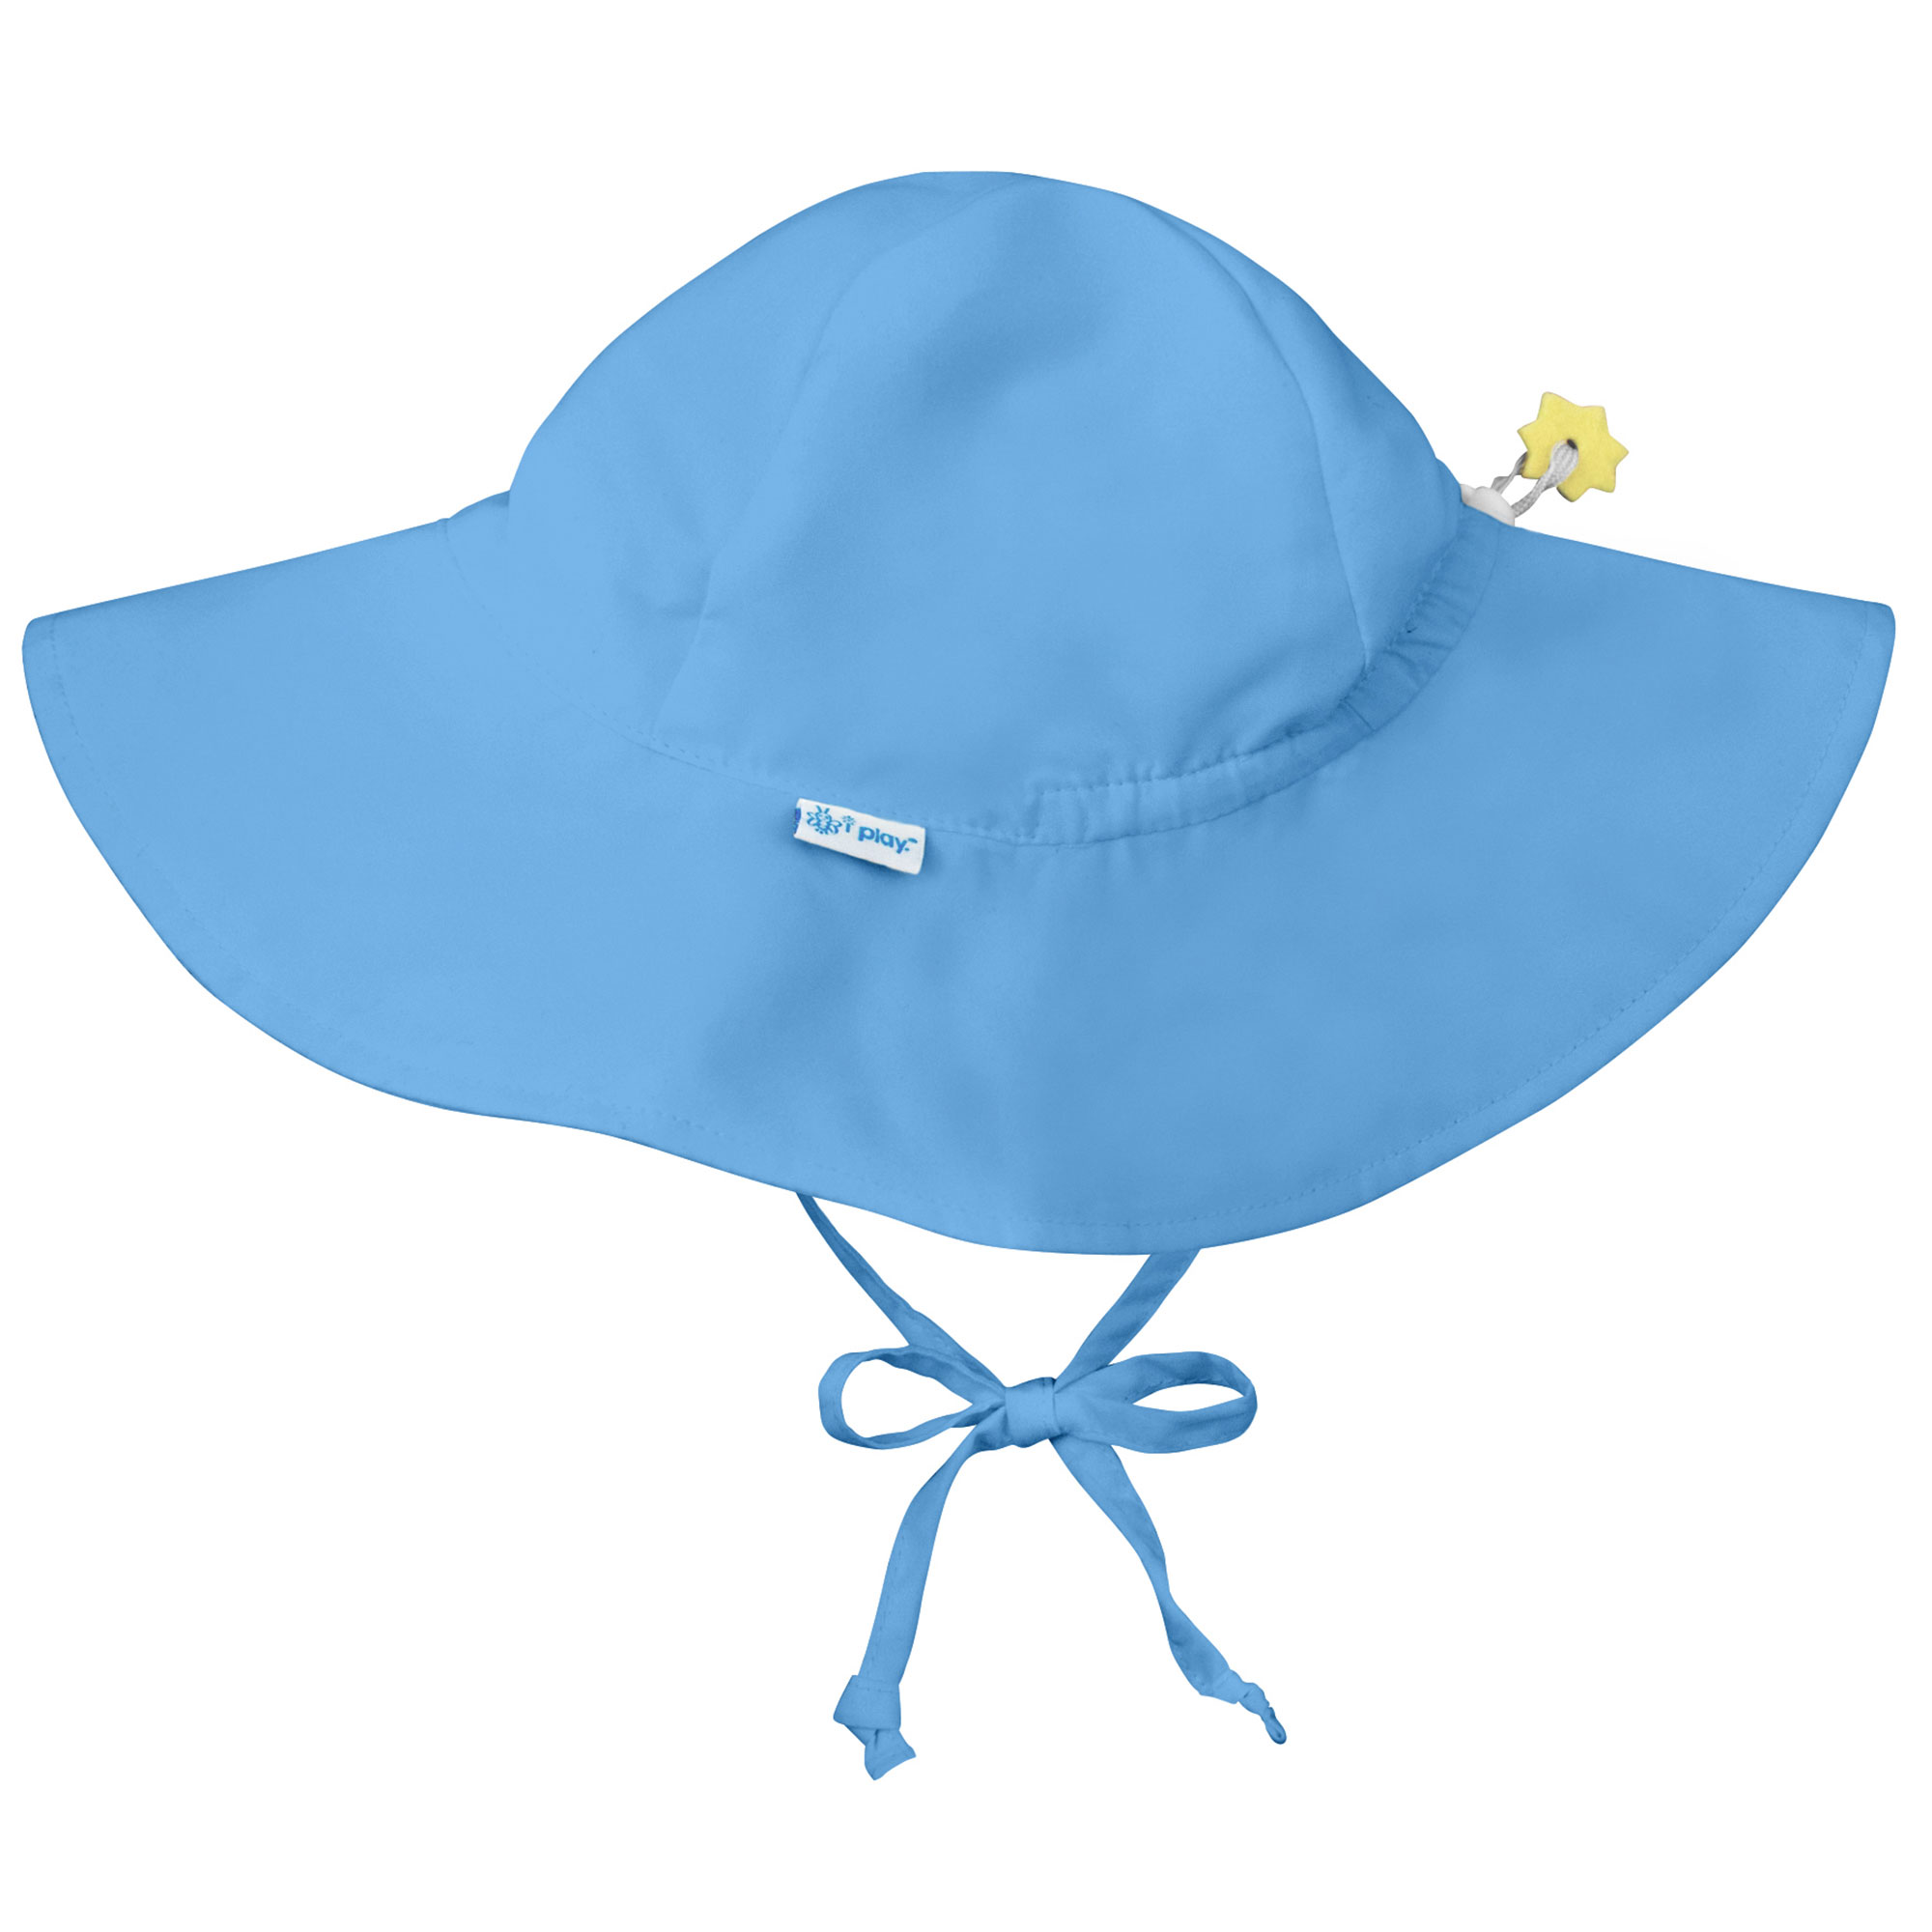 Toddler Floppy Hat Kids Sun Hat with Chin Strap Unisex Baby Sun Protection Hat